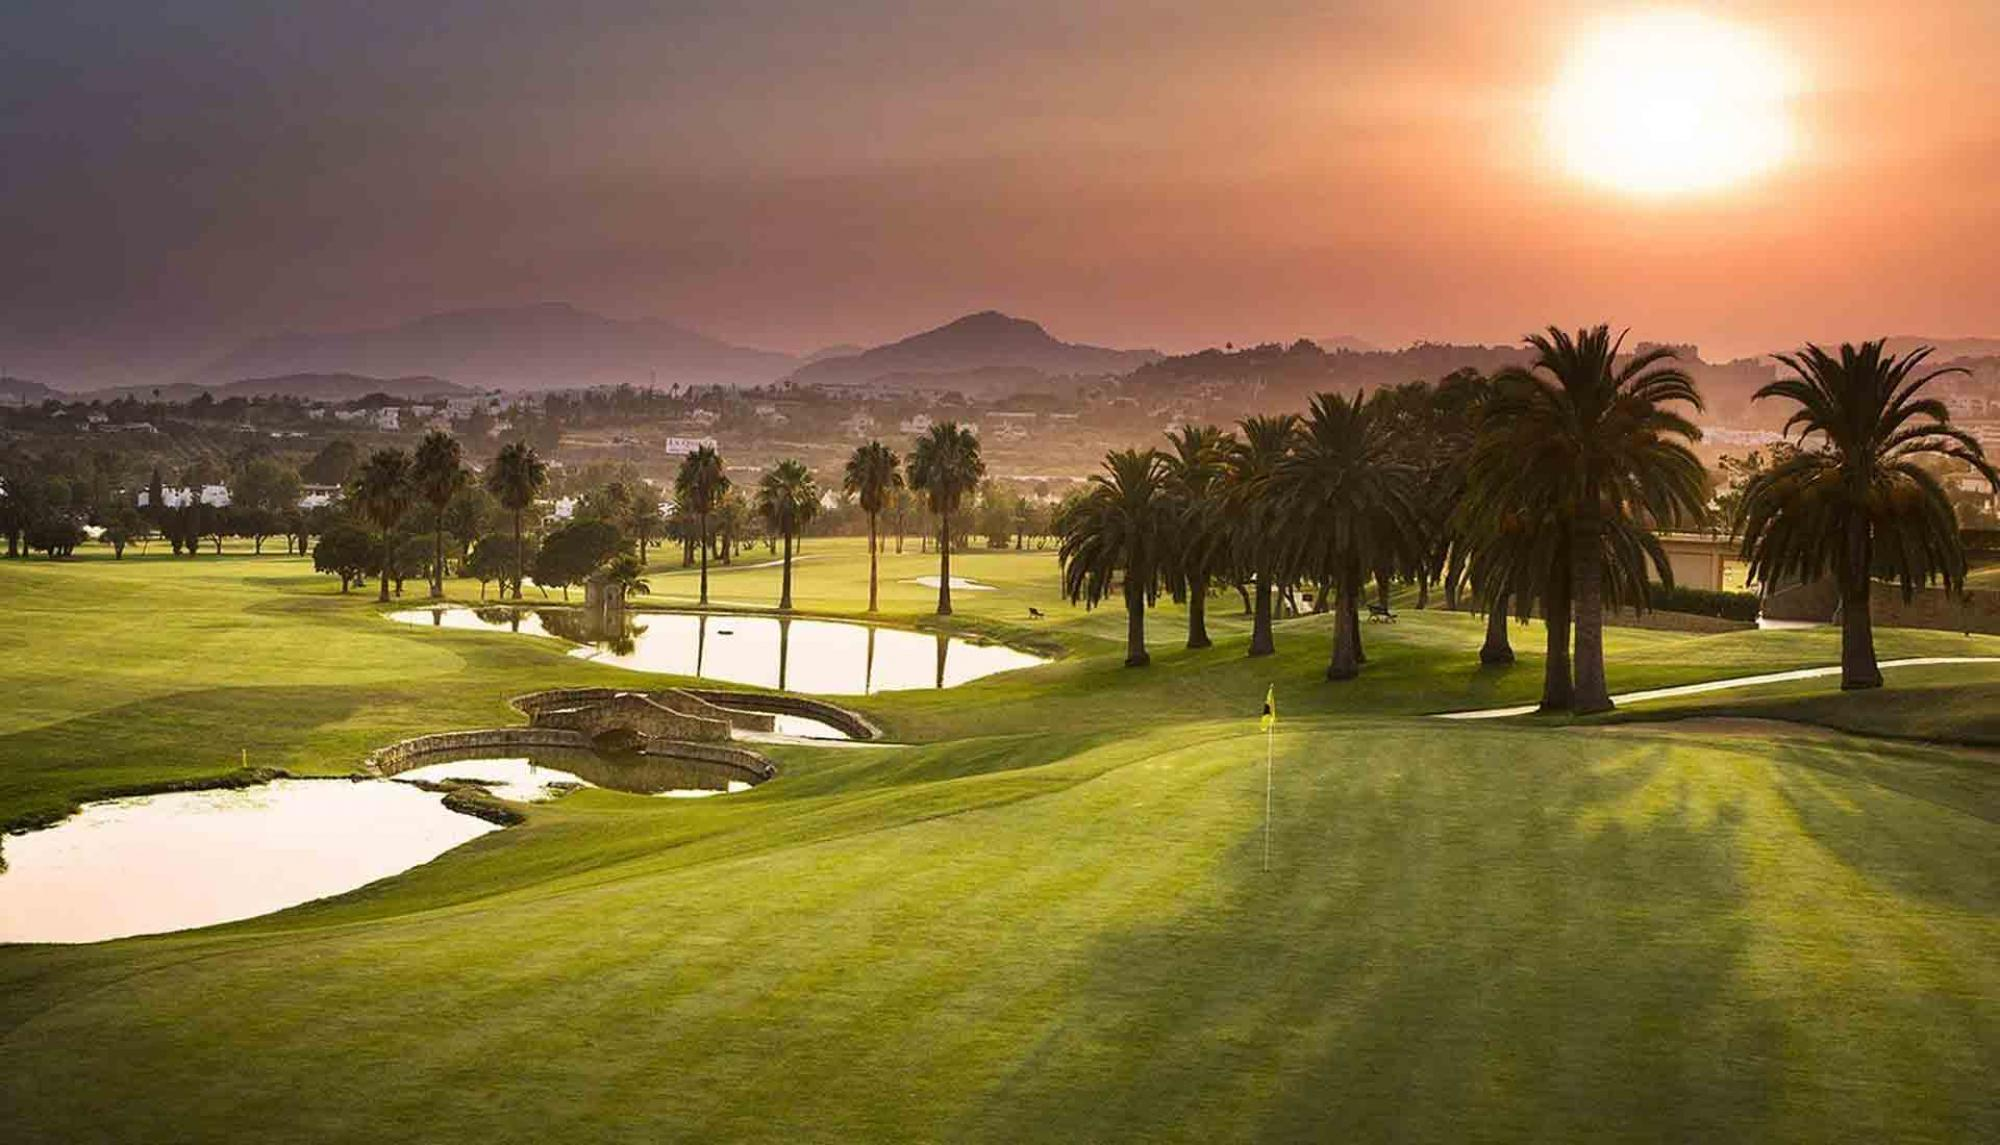 The Double Tree By Hilton Hotel Emporda  Spa's lovely golf course within stunning Costa Brava.